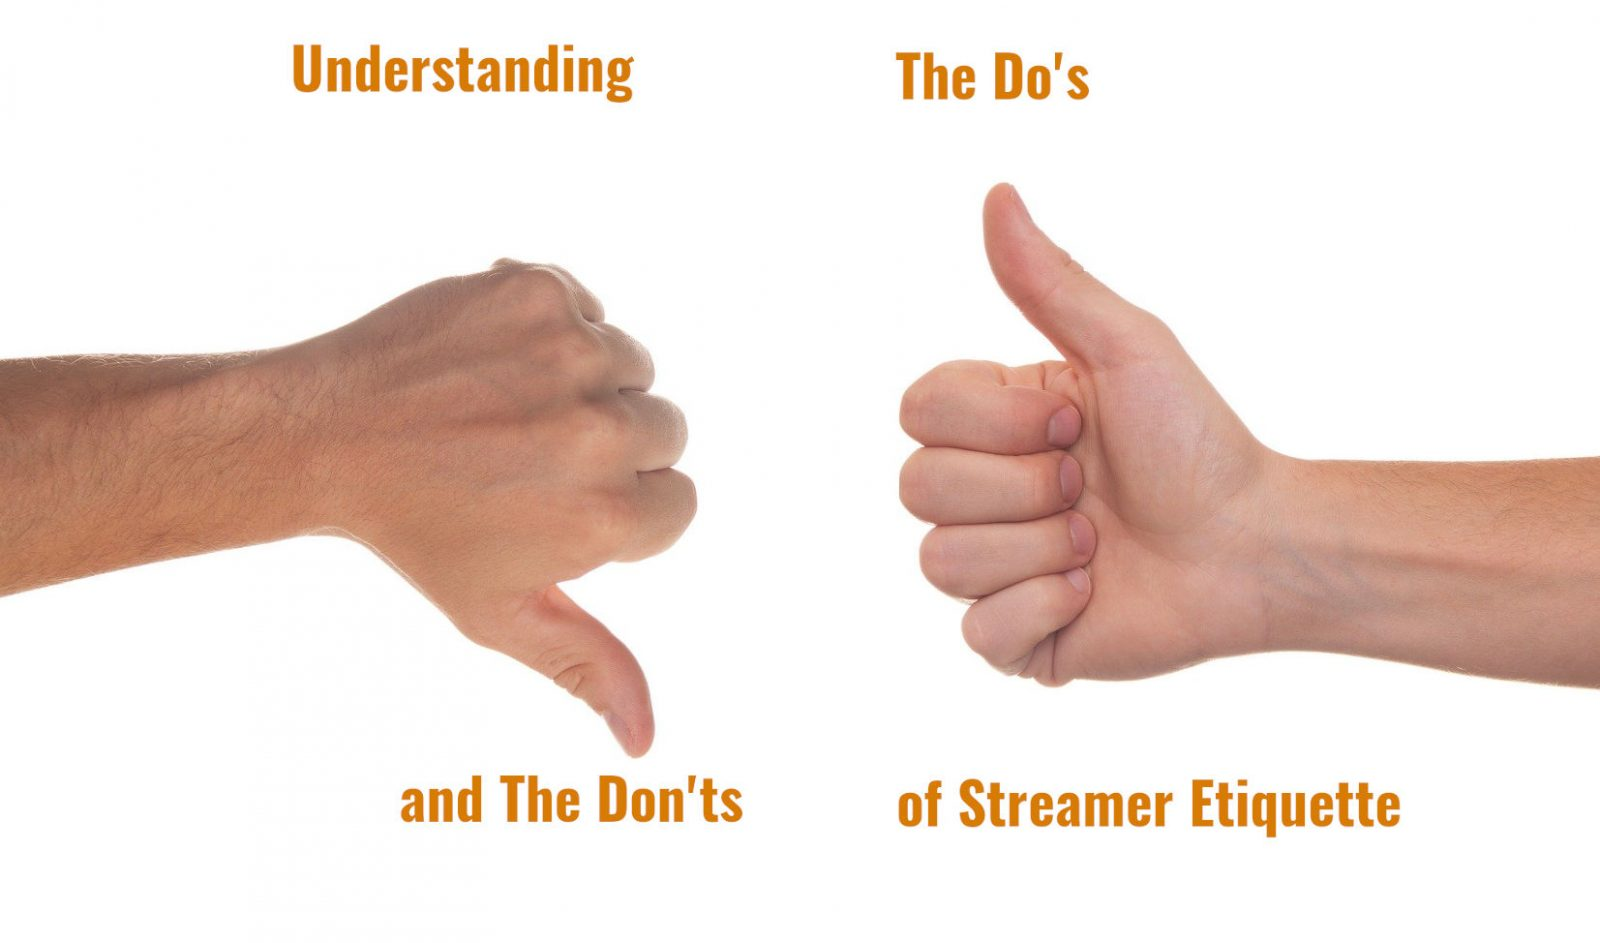 The Do's and Don'ts of Streamer Etiquette.